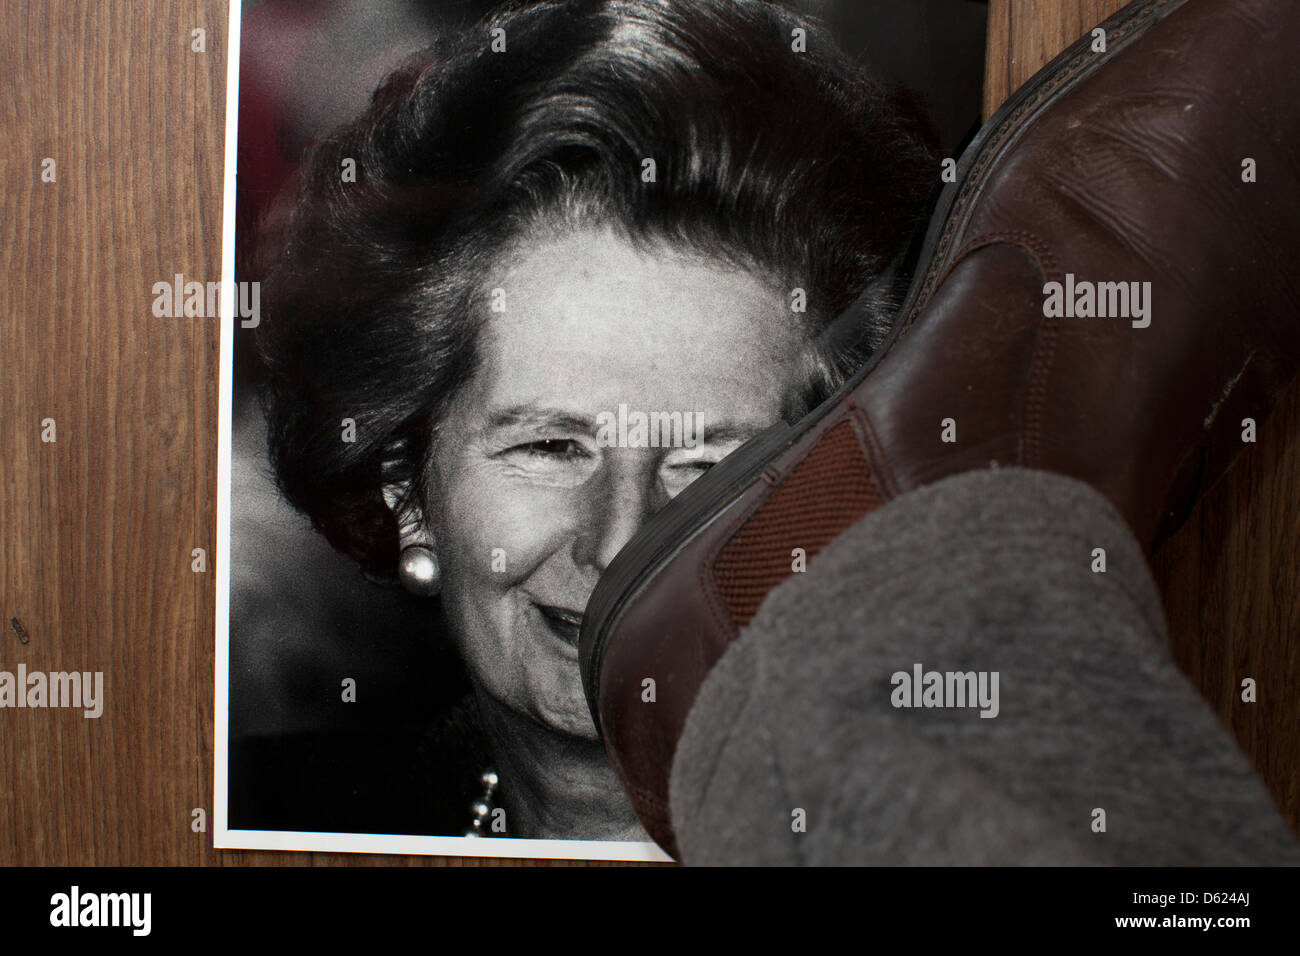 Tramp the dirt down. A picture of former British Prime Minister Margaret Thatcher is  stamped on - Stock Image